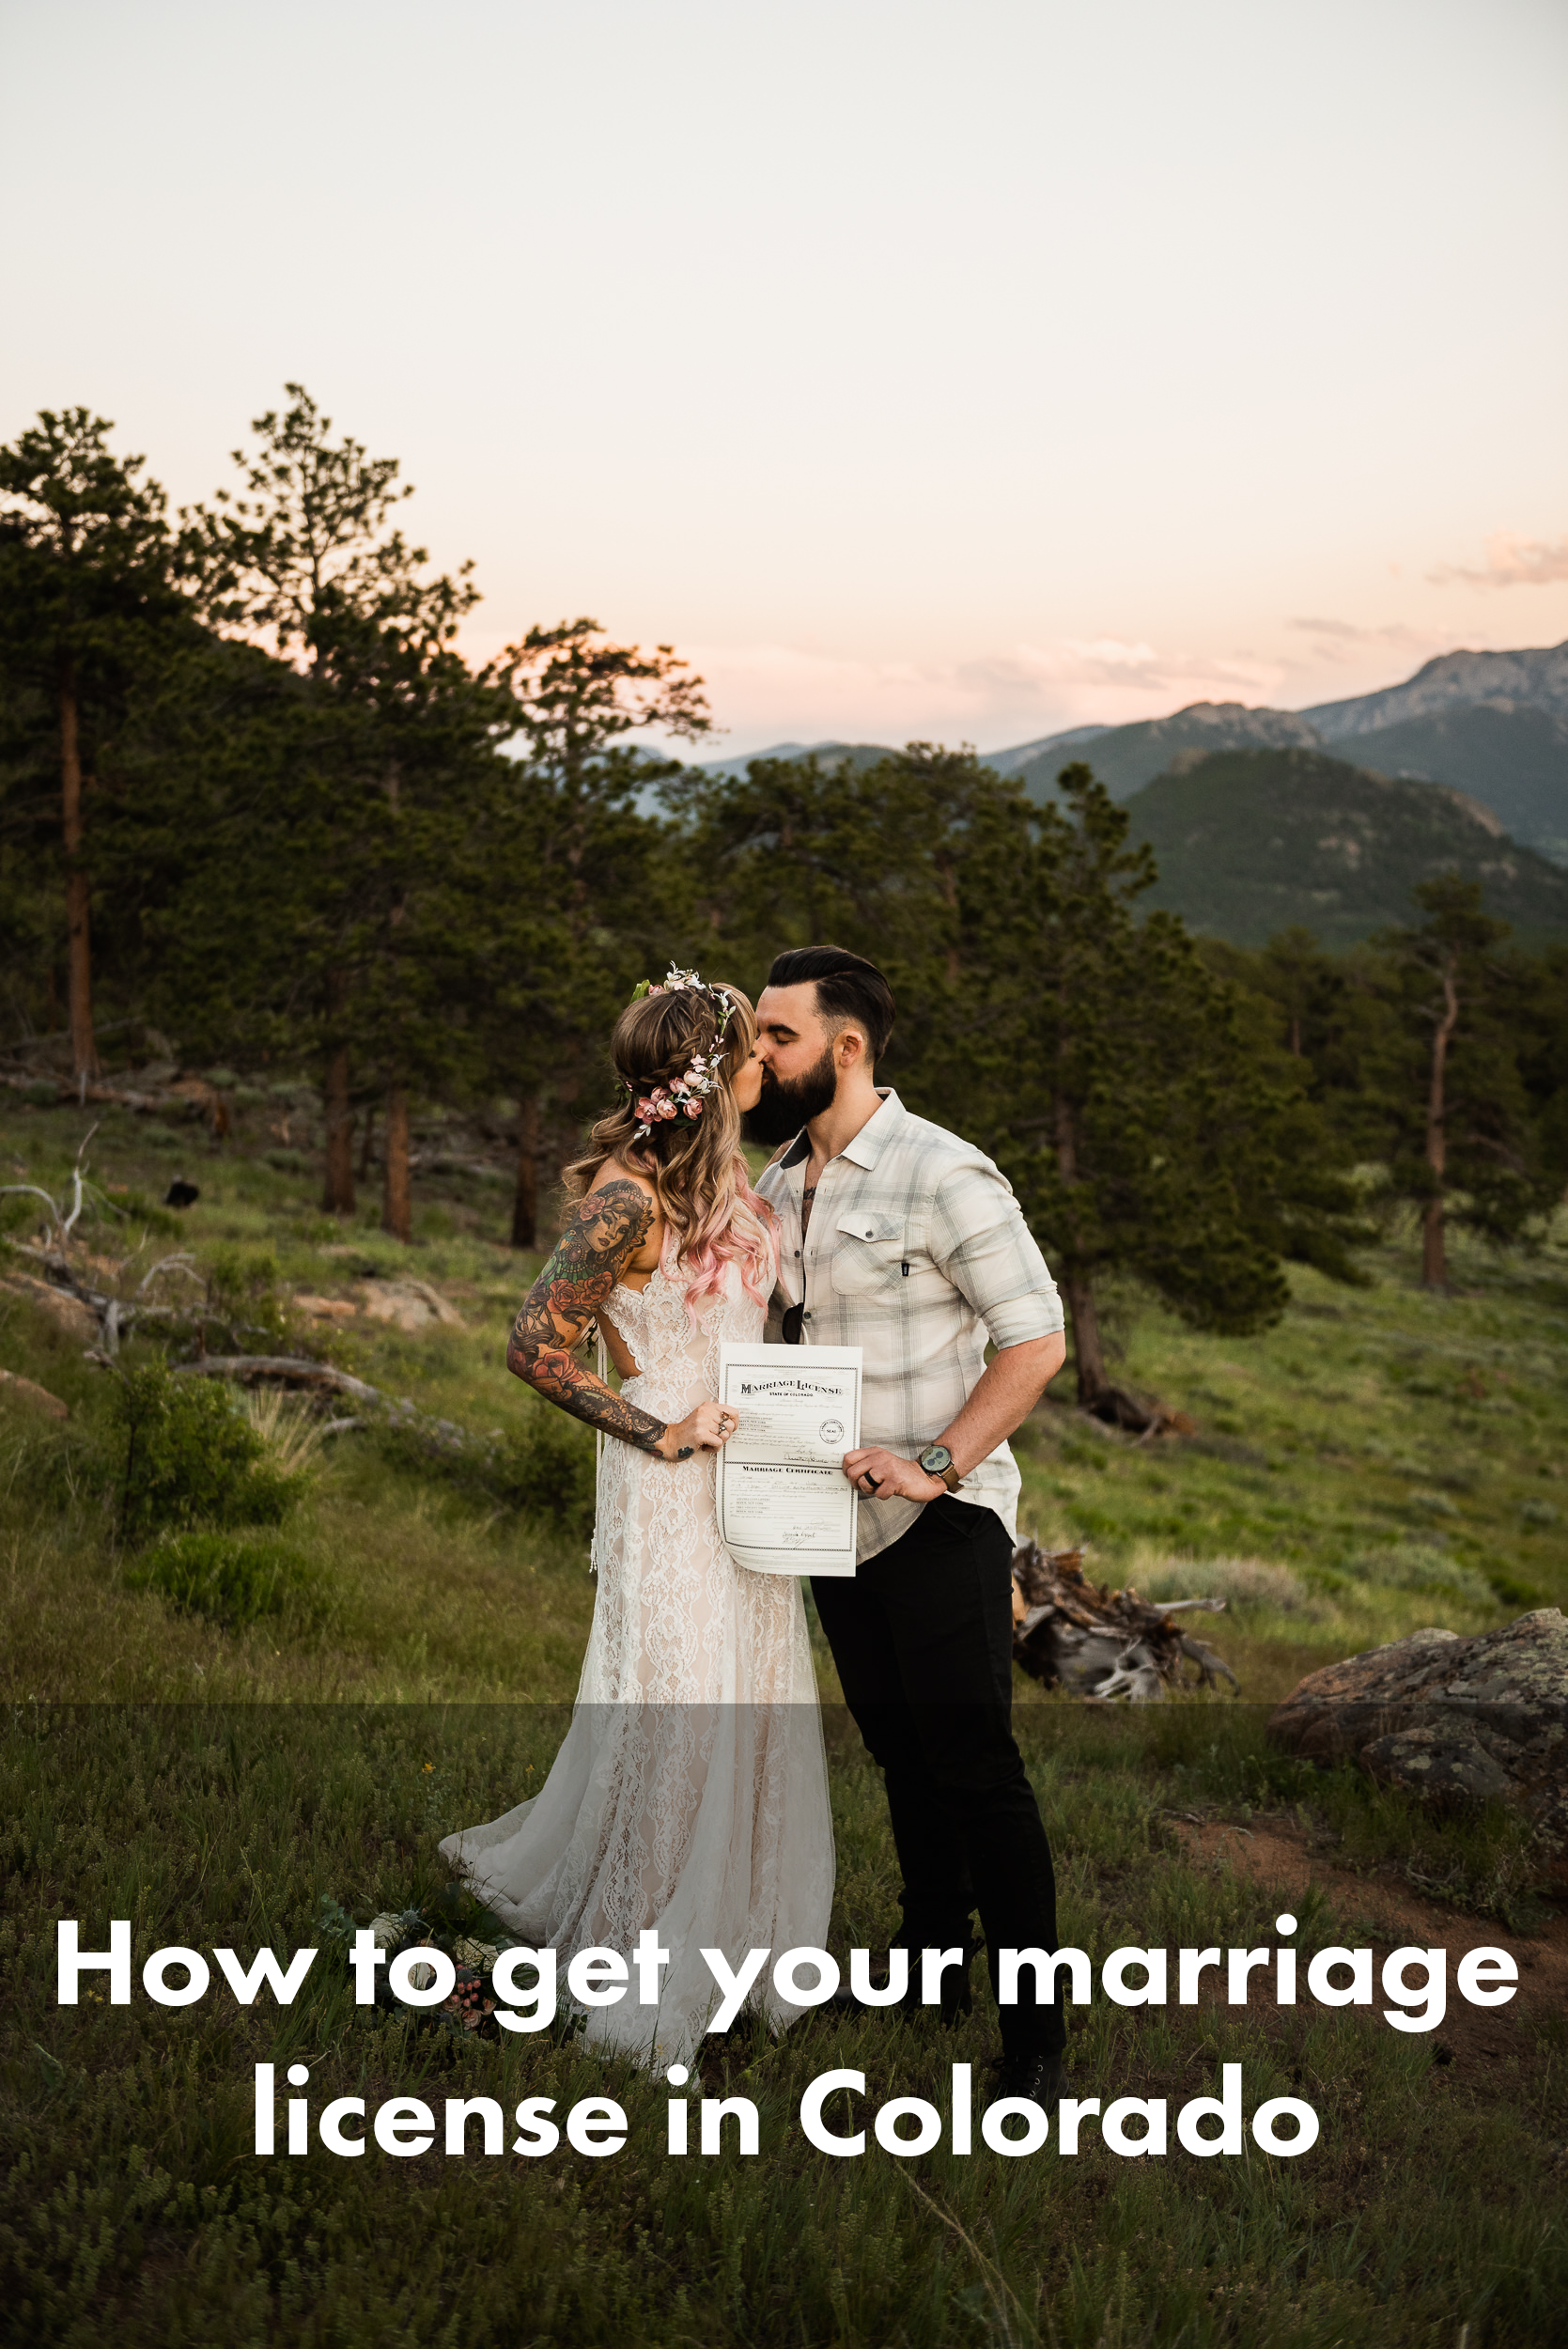 This is a picture of a couple kissing, holding their marriage license in front of them. The bride on left is wearing a sleeveless dress, showing off her arm tattoos. The broom on the right has a beard and is wearing a buttoned shirt and a watch, jeans, and boots. They're standing in a grassy field, with trees and mountain peaks behind them at sunset.